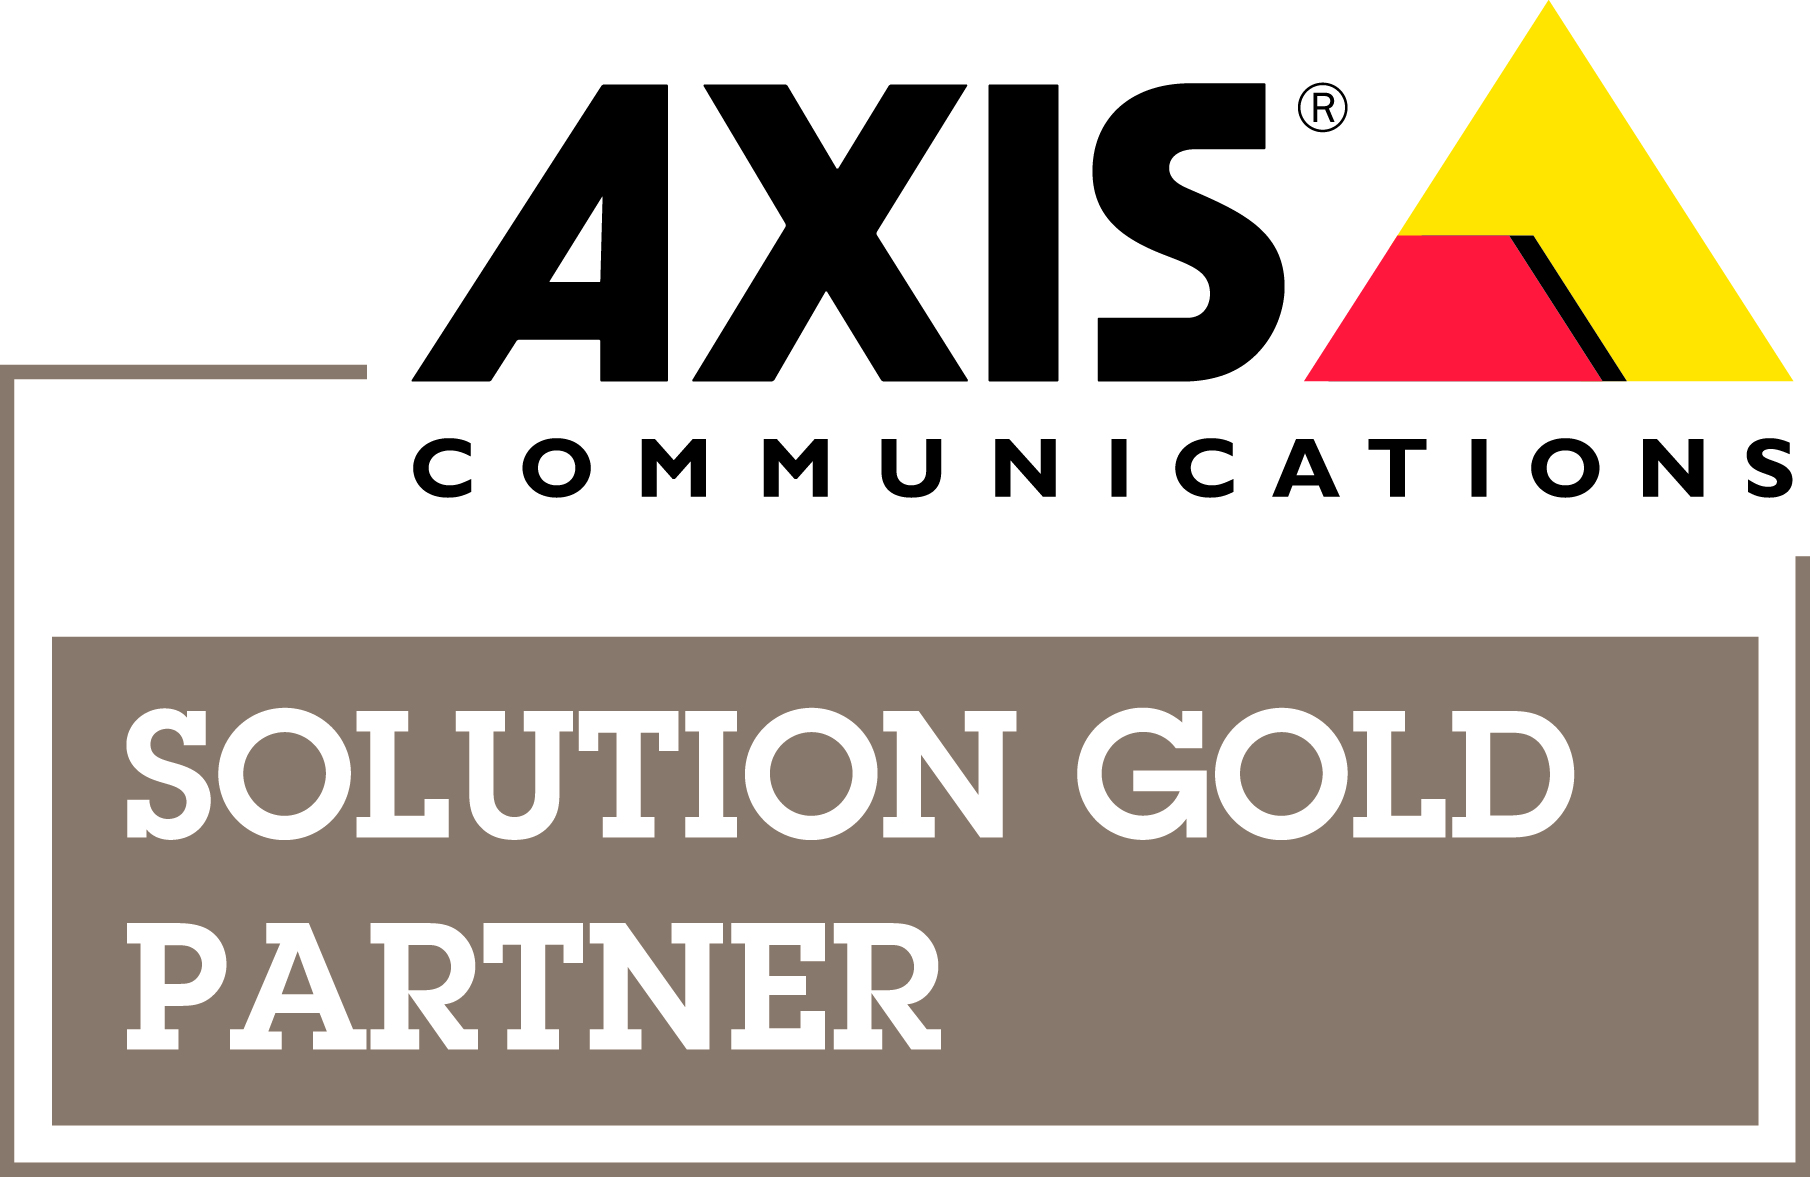 logo_axis_cpp_solution_gold_cmyk.jpg